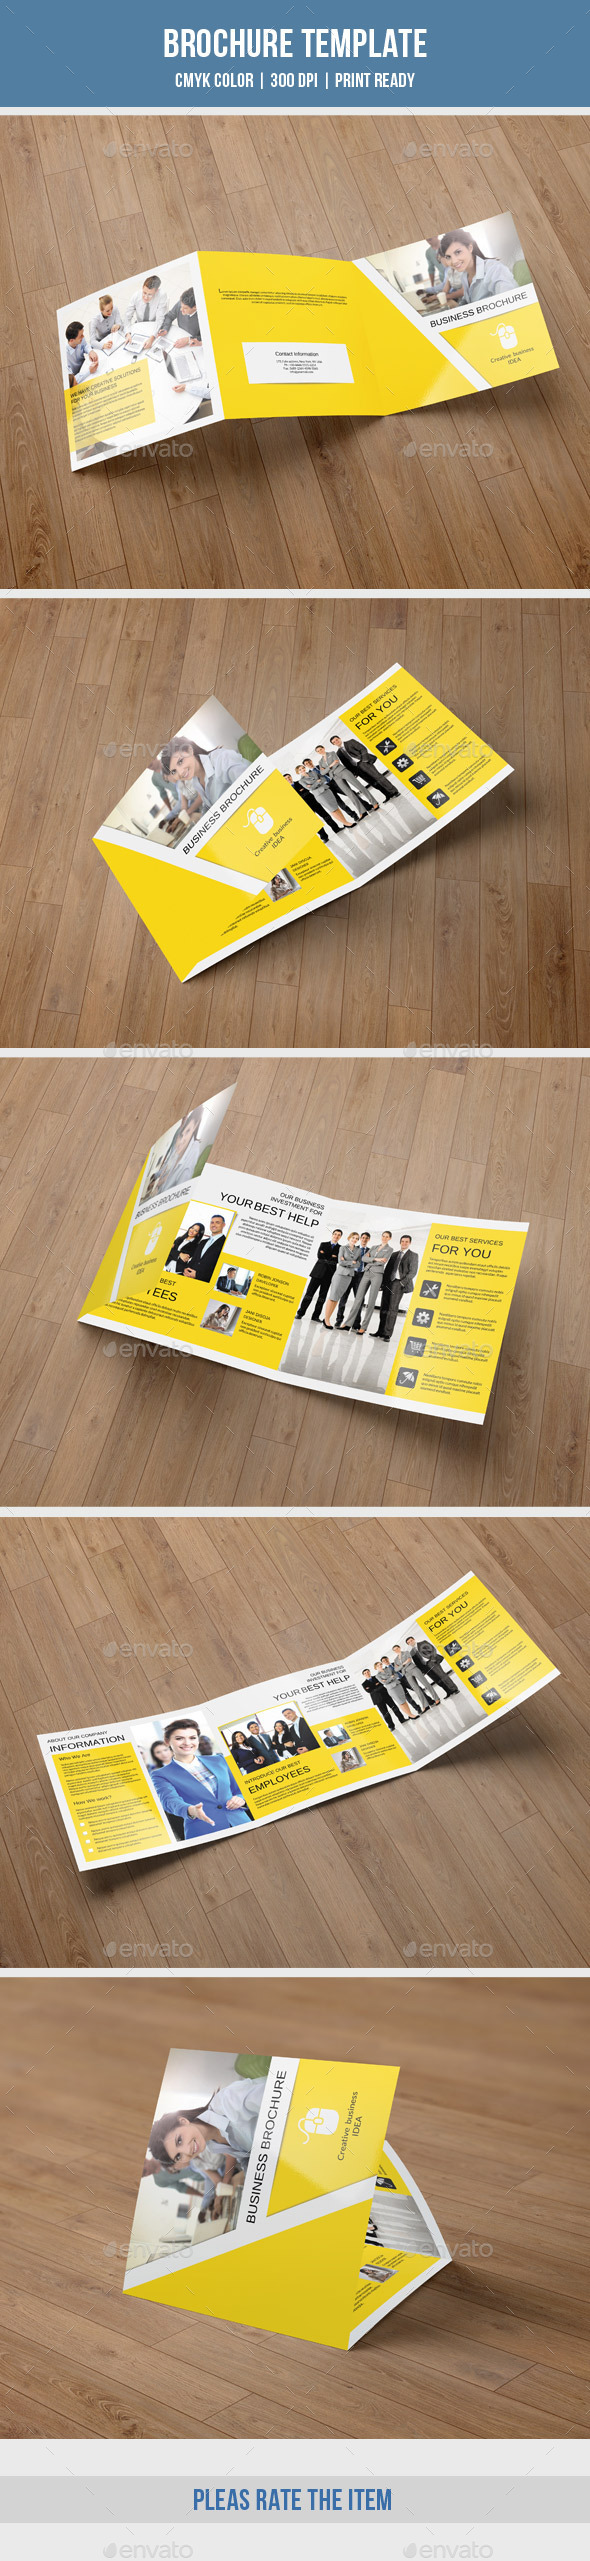 Corporate Square Trifold Brochure-V60 - Corporate Brochures